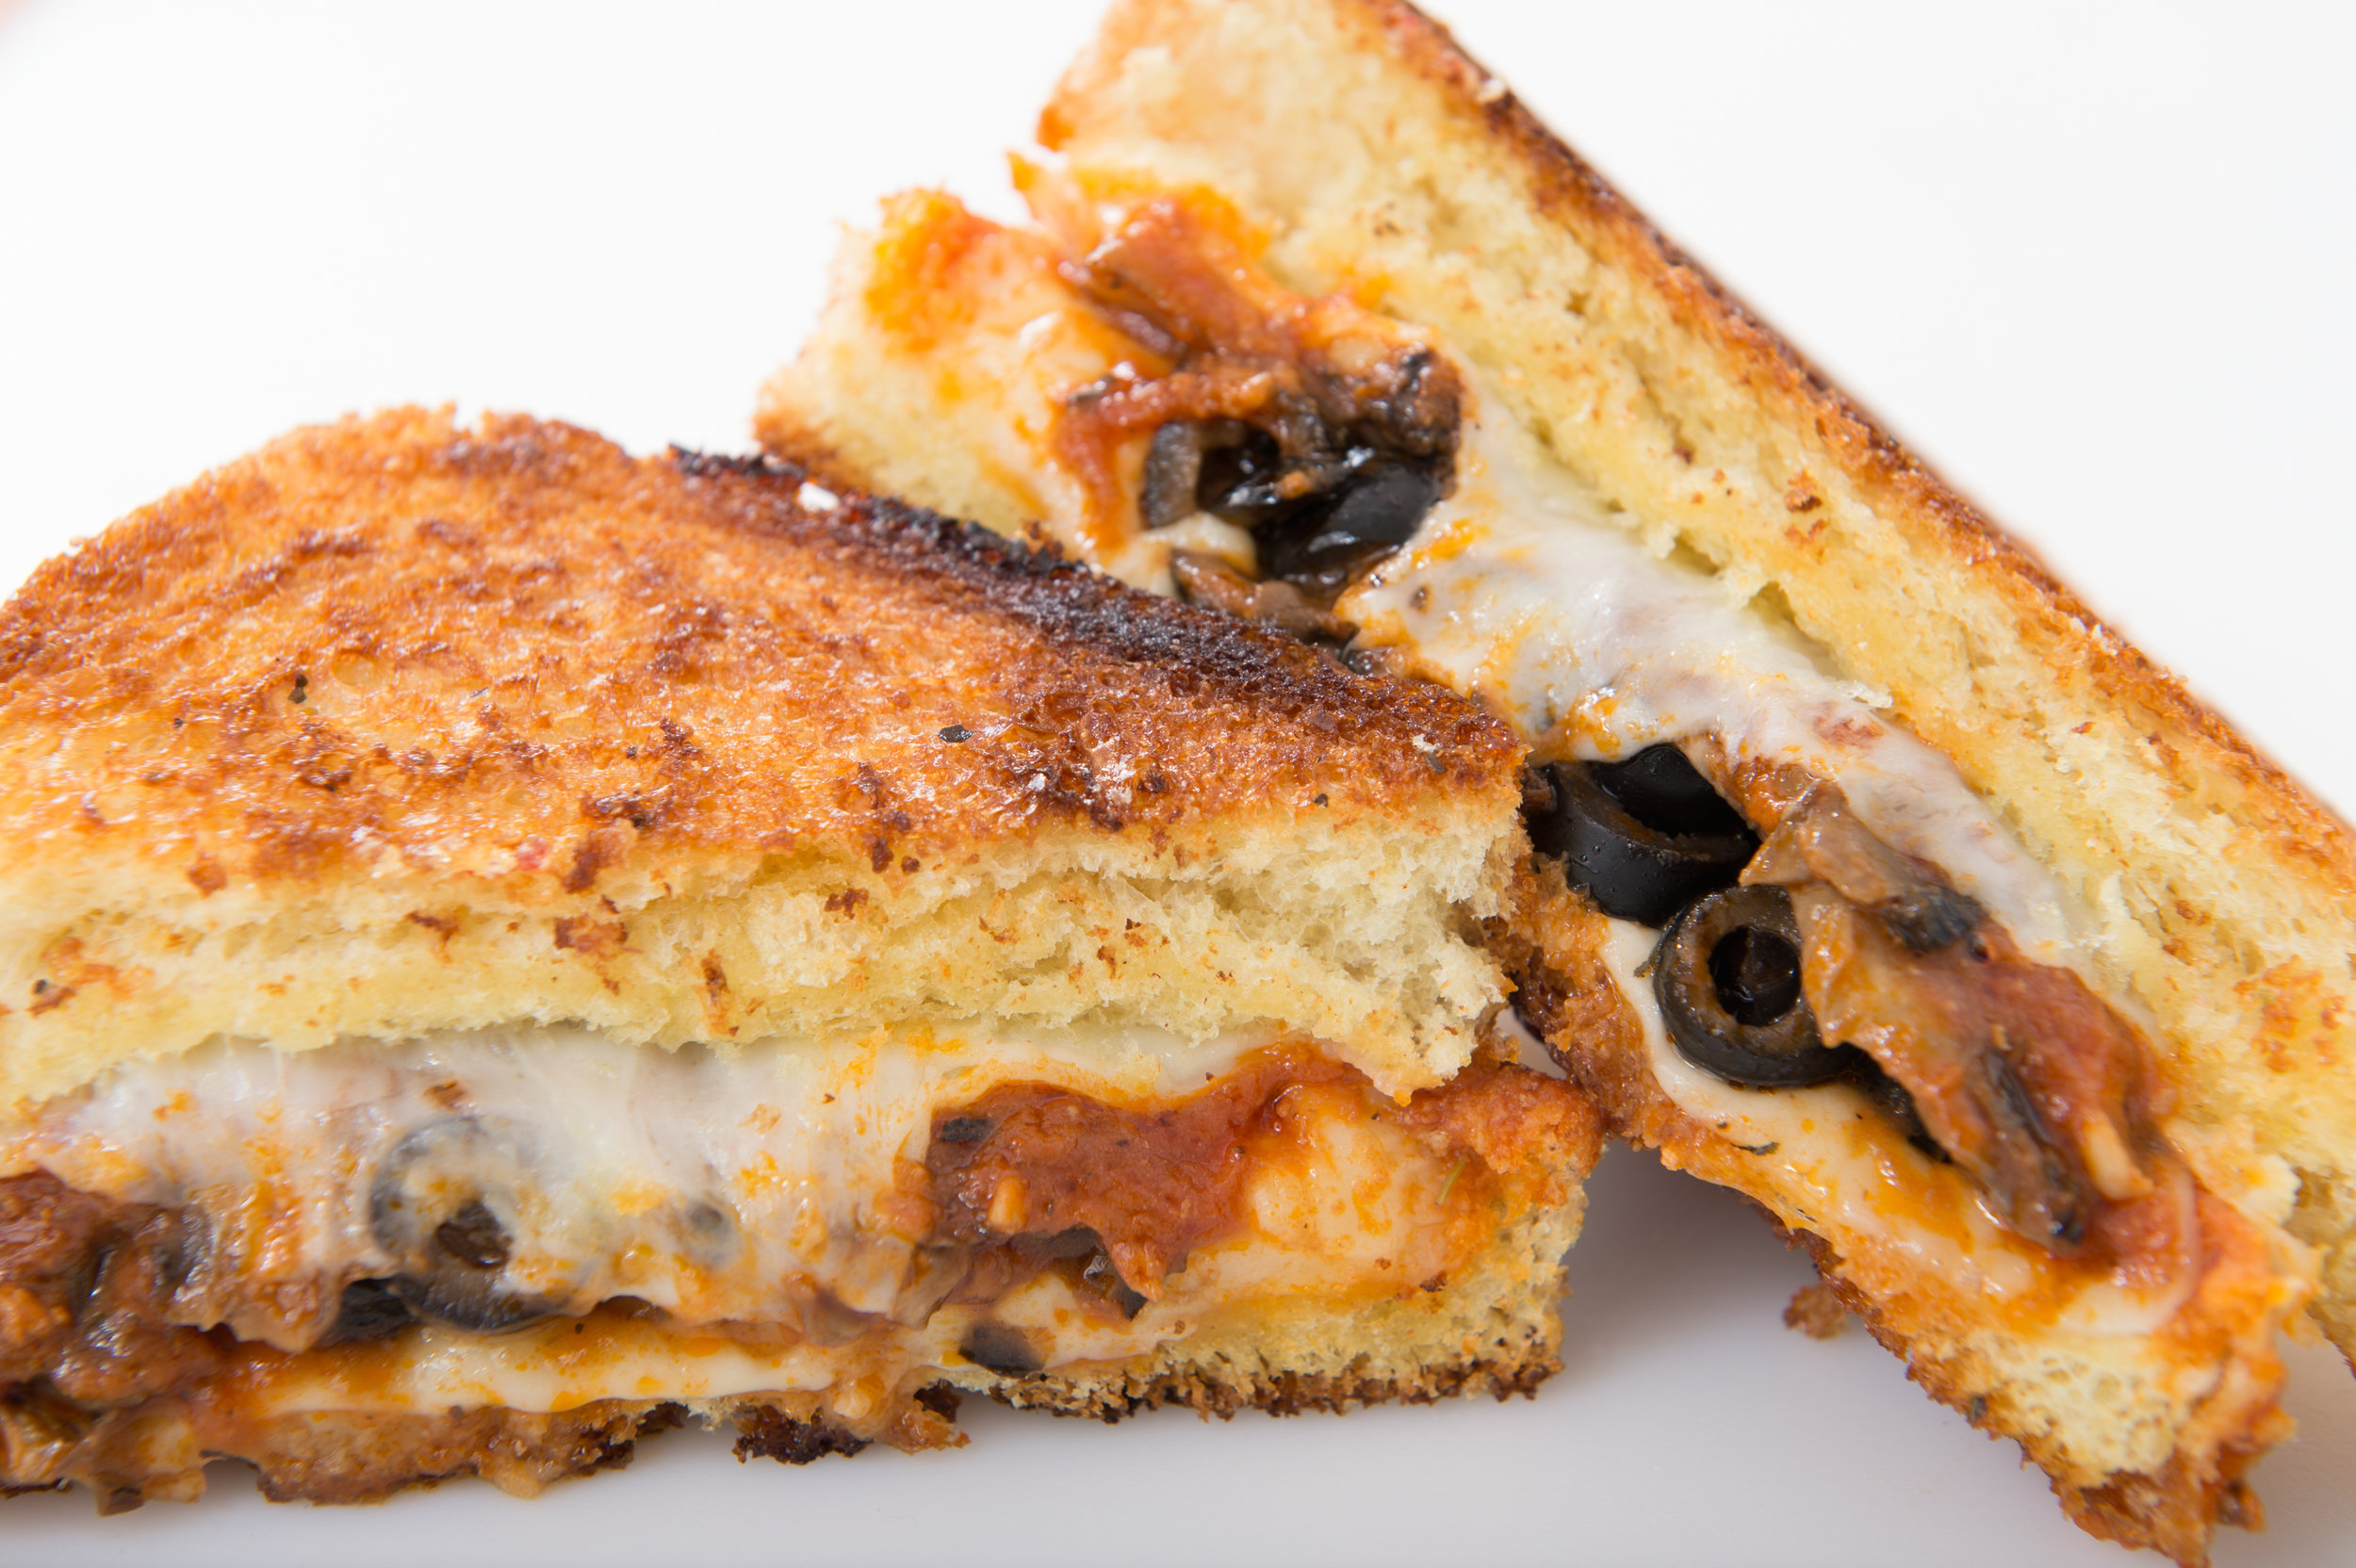 The Mario  - Provolone, marinara, sauteed mushrooms and black olives on grilled texas toast.